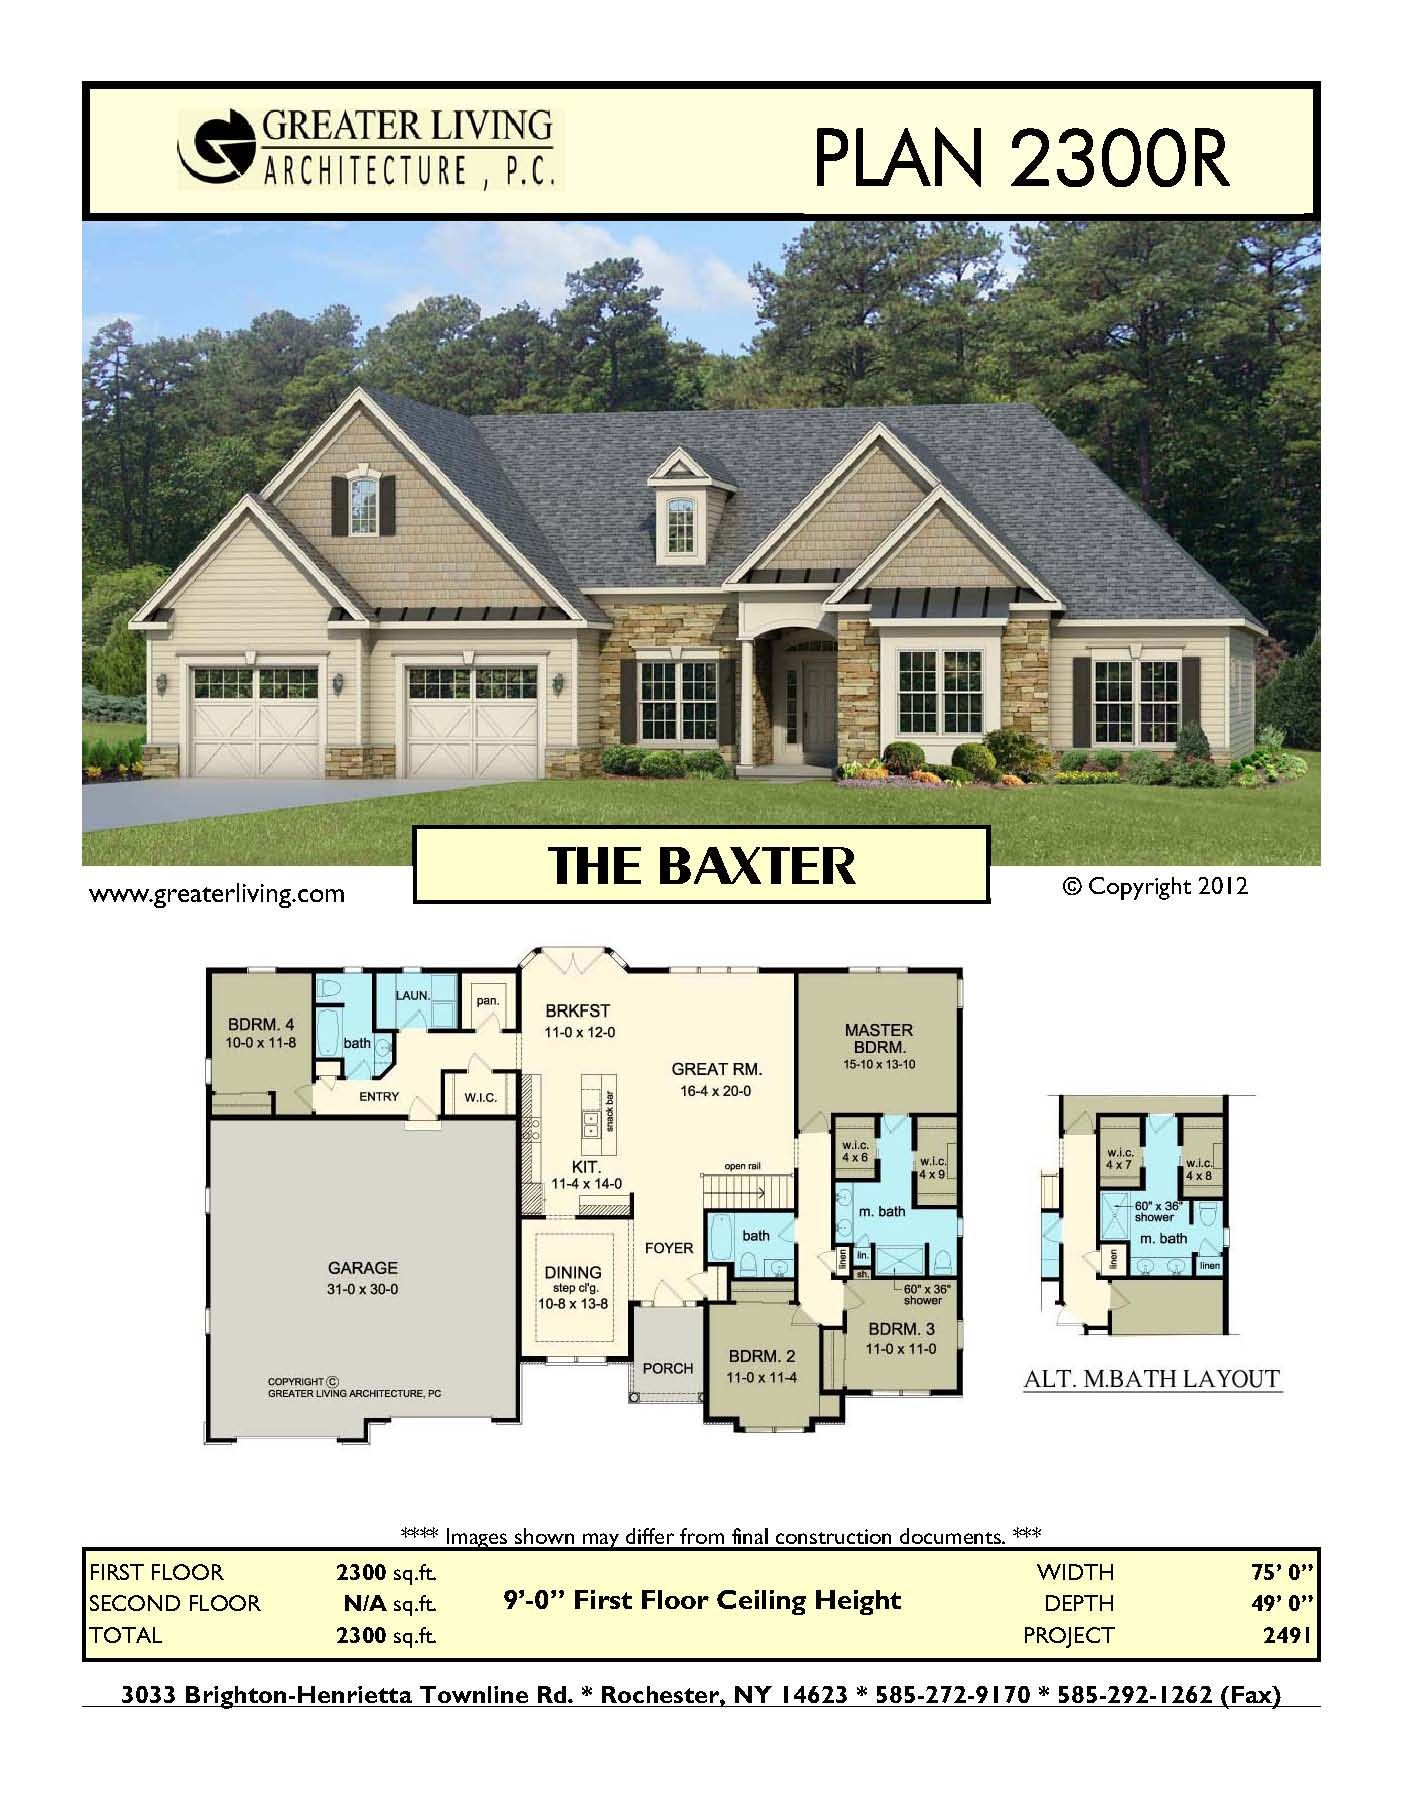 Plan 2300r The Baxter House Plans Ranch House Plan Greater Living Architecture Residentia My House Plans New House Plans Open Concept Floor Plans Ranch